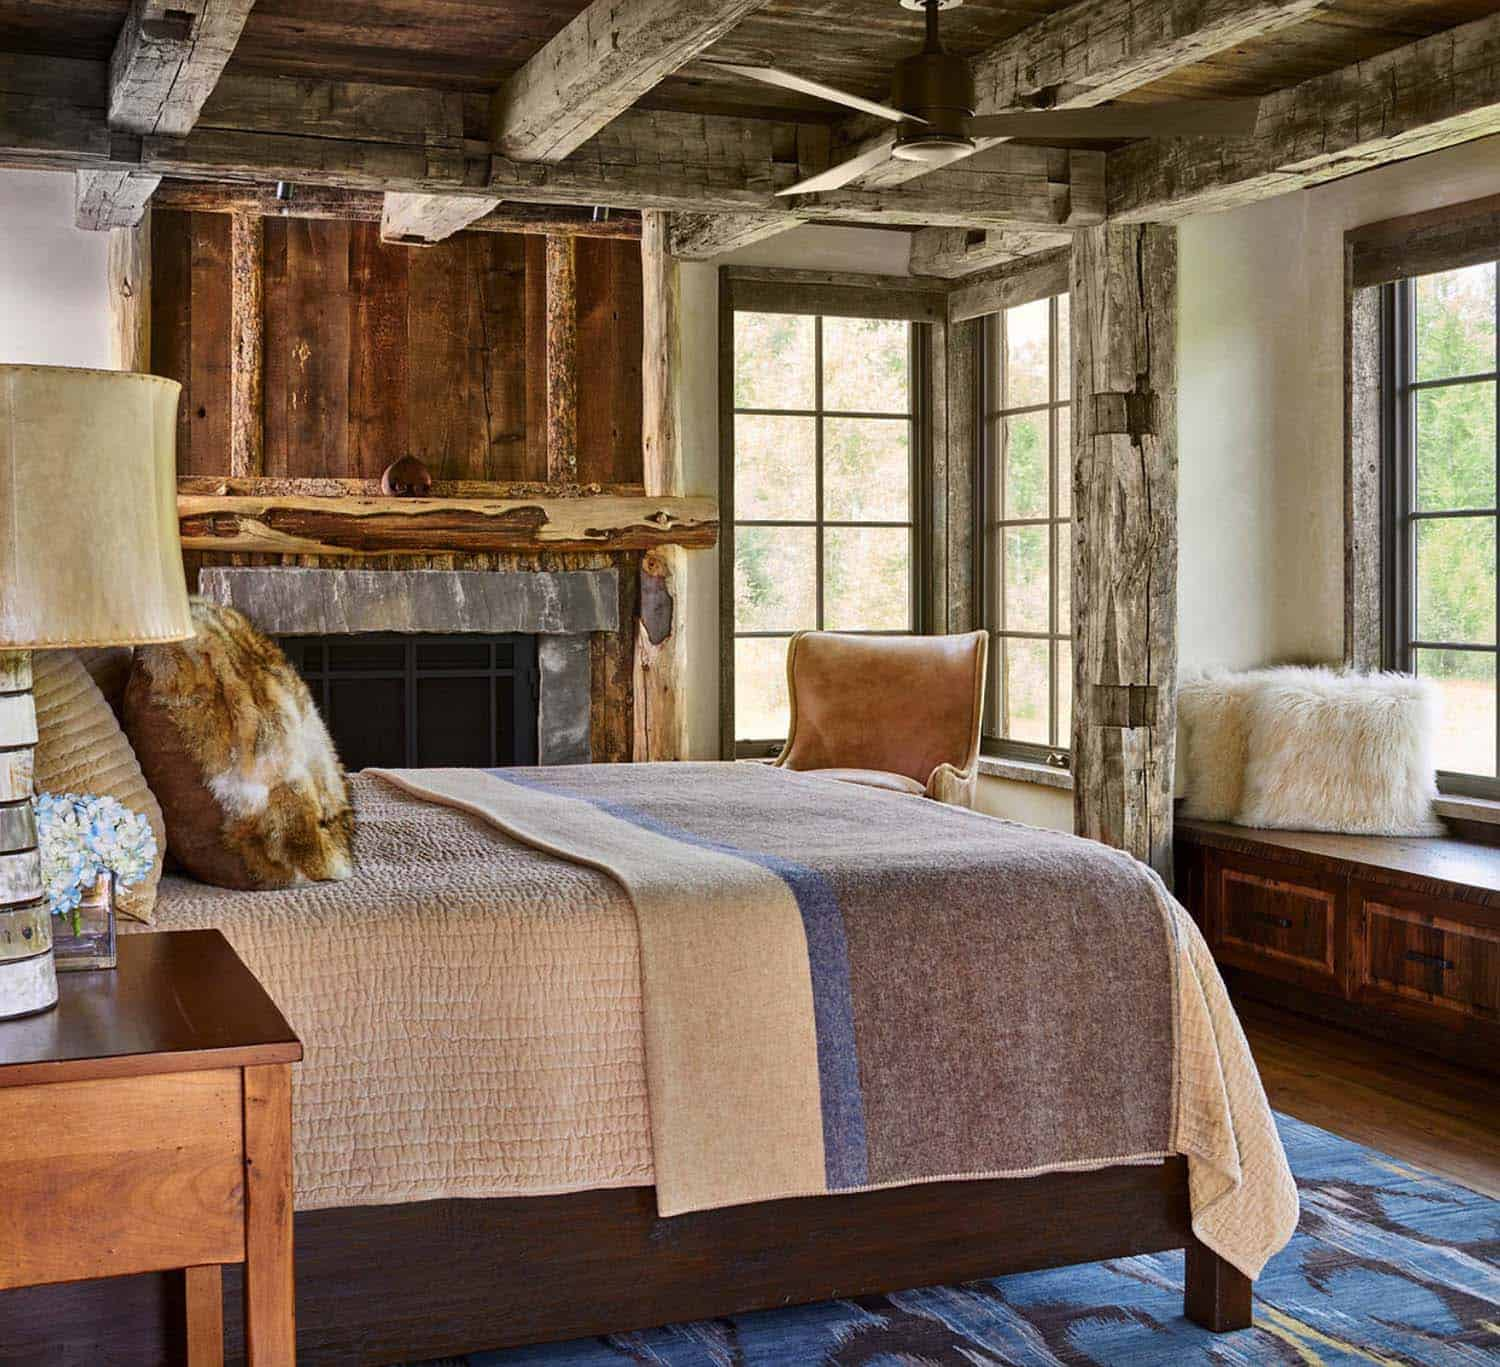 Modern Classic And Rustic Bedrooms: Modern-rustic Log Cabin Preserves Historic Charm In